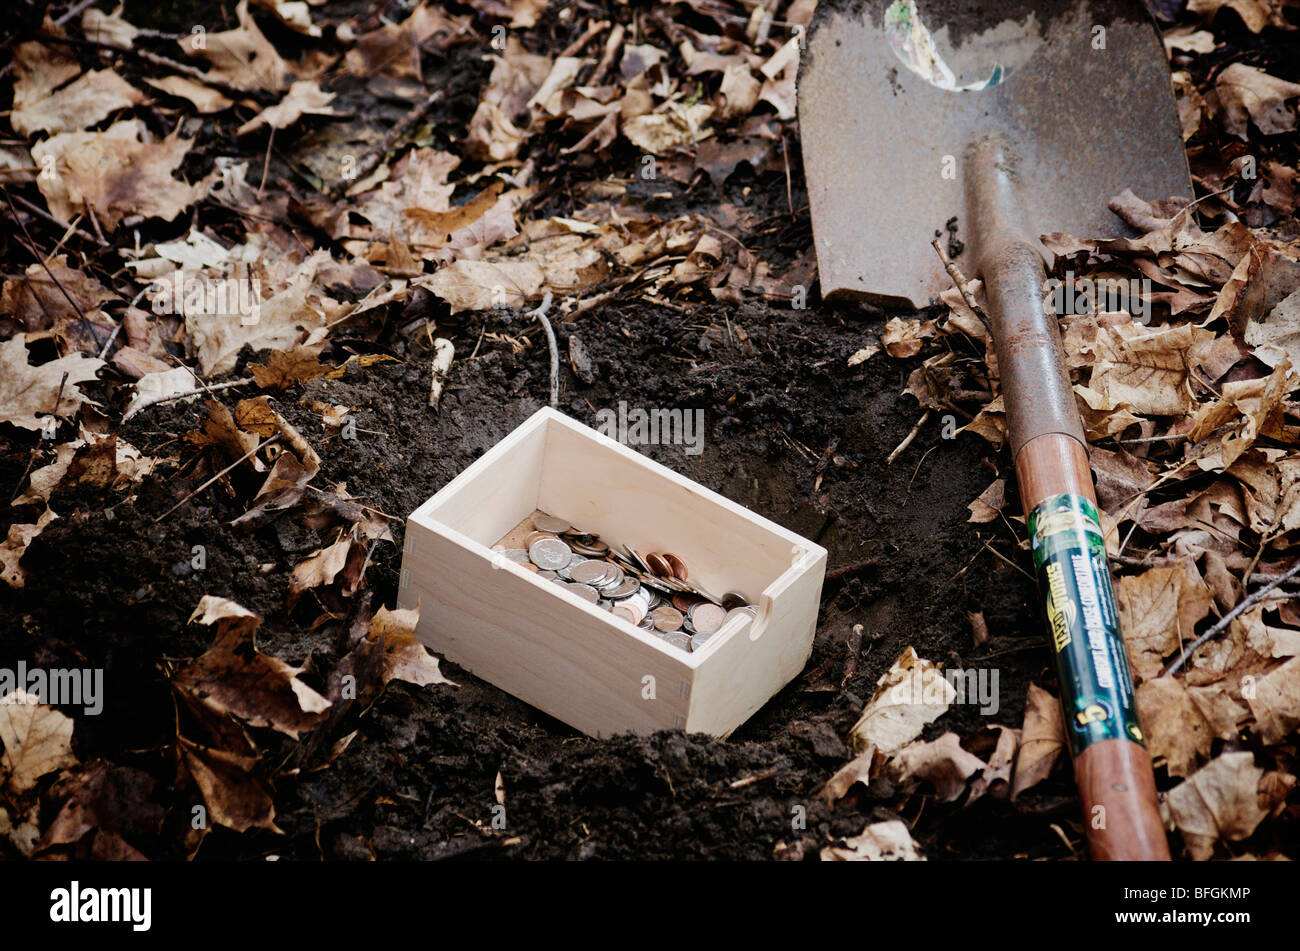 https://c8.alamy.com/comp/BFGKMP/shovel-next-to-a-box-filled-with-money-getting-buried-in-the-ground-BFGKMP.jpg